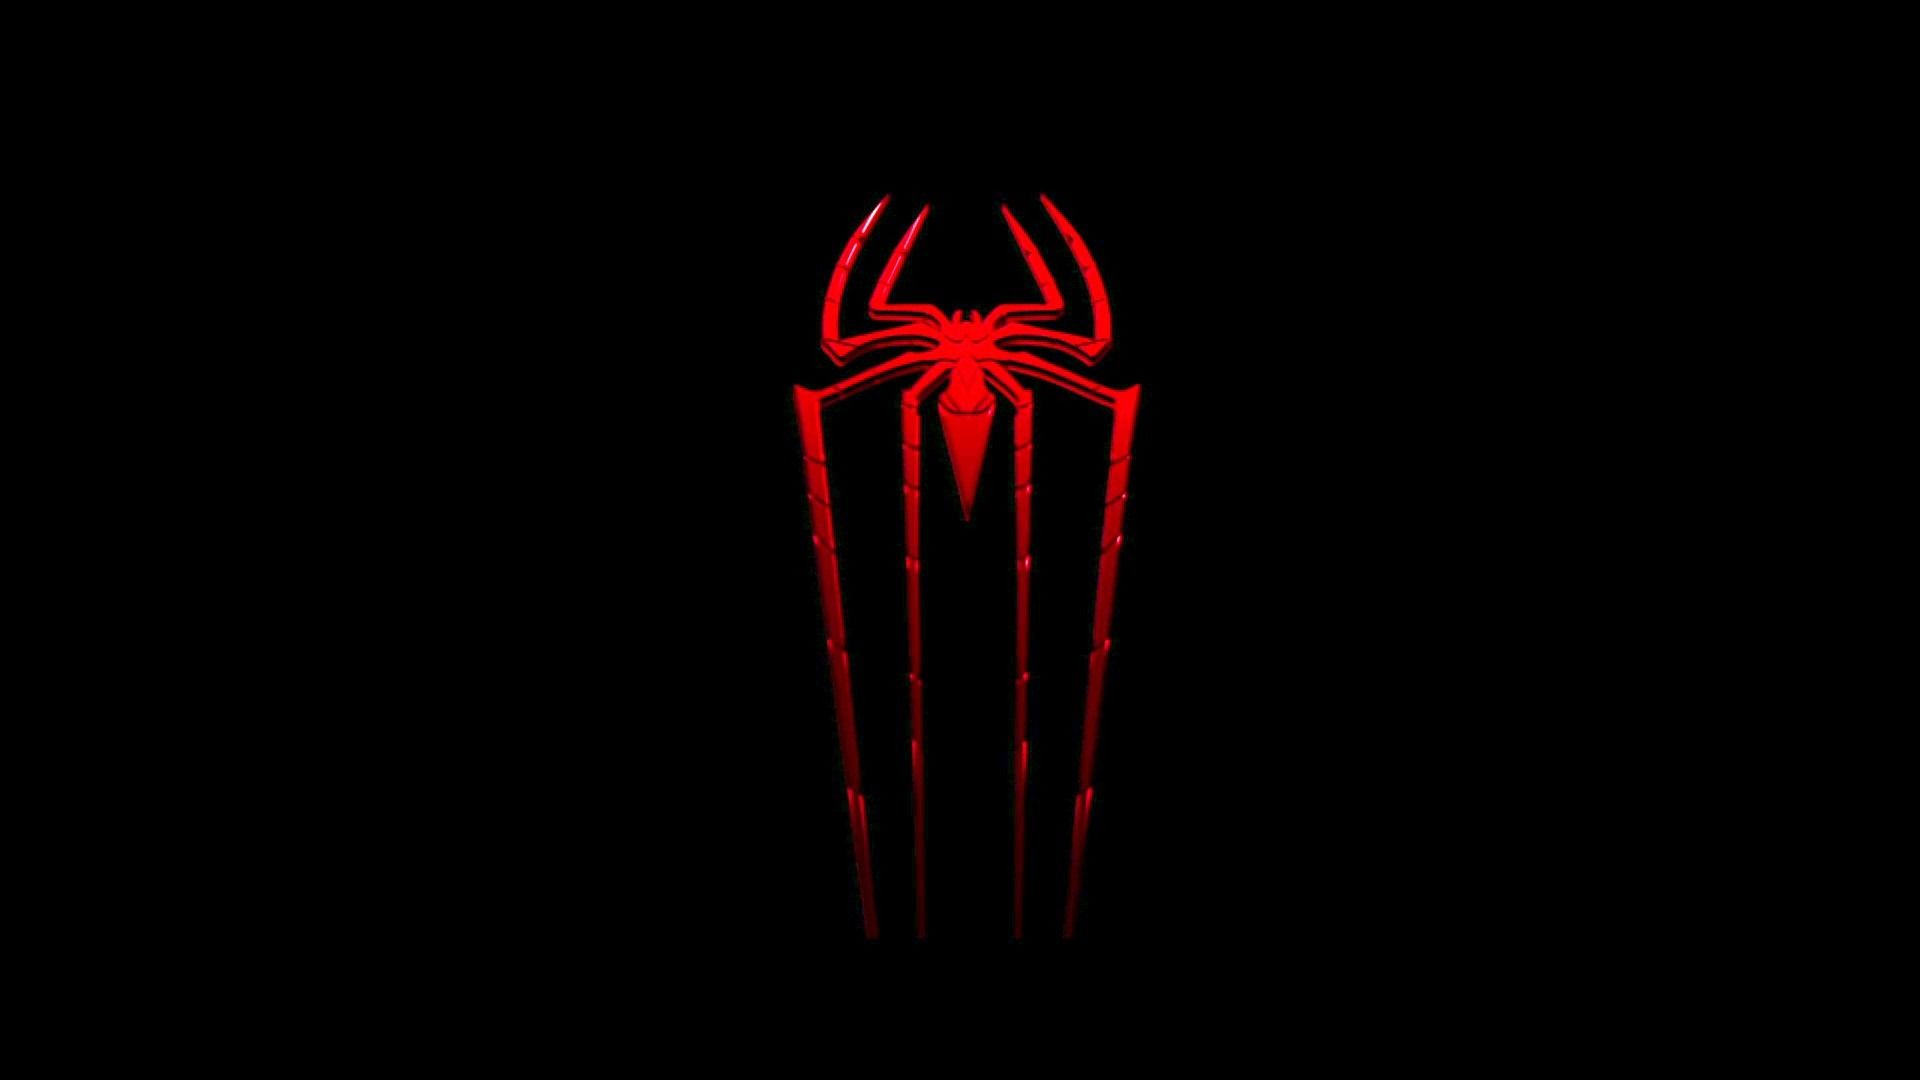 spiderman logo wallpaper hd resolution #djv | awesomeness